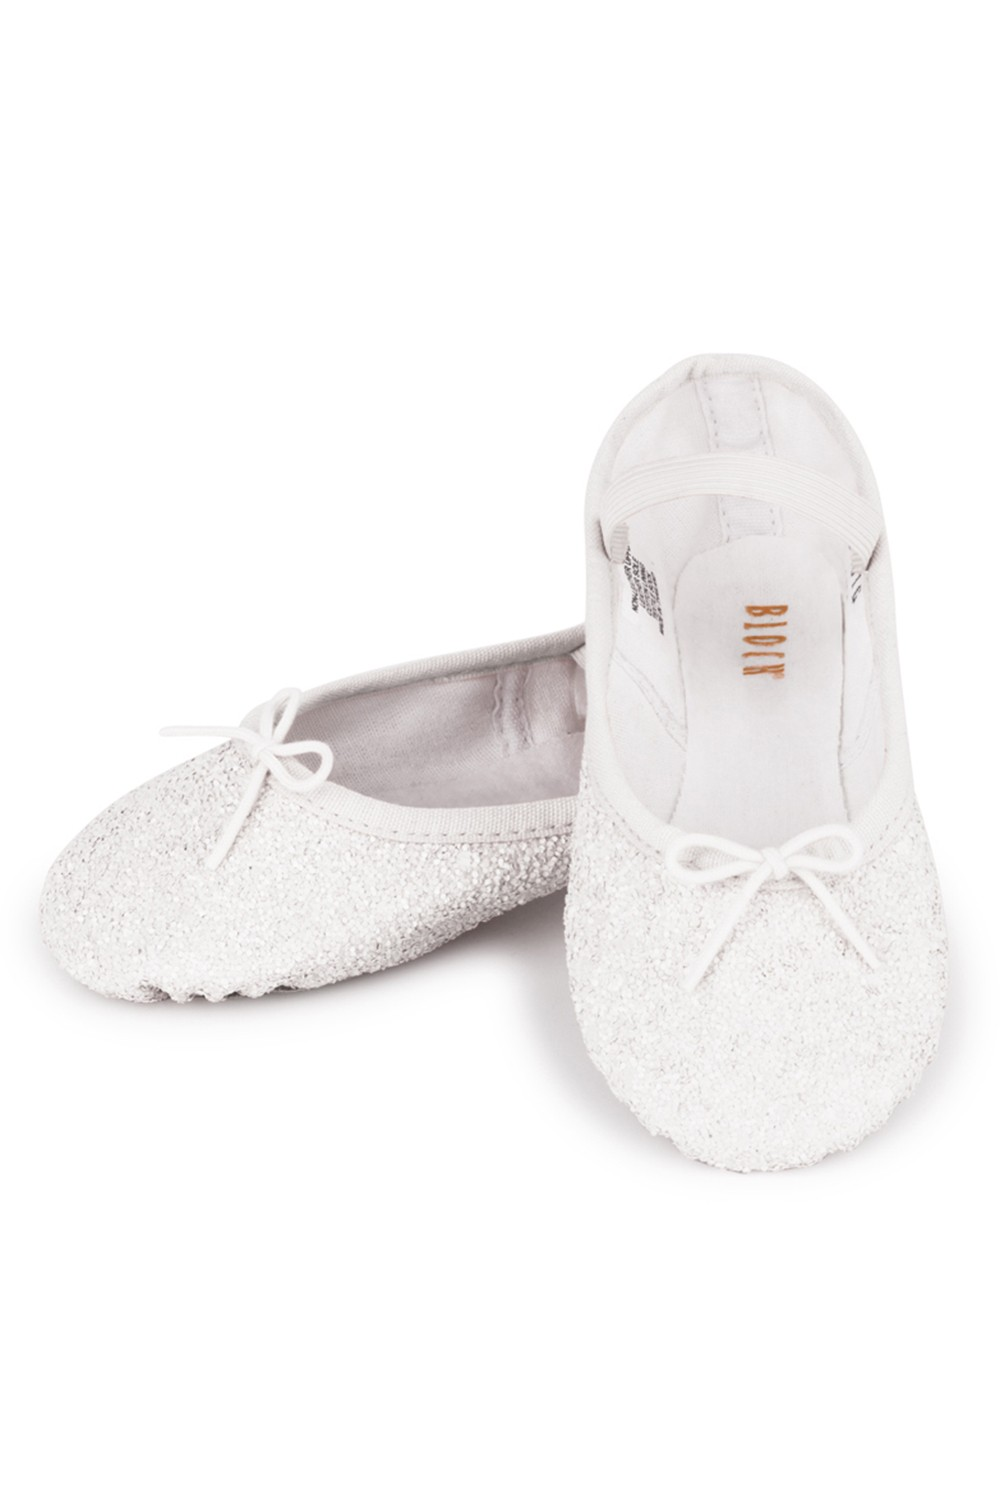 Sparkle - Petite Fille Girl's Ballet Shoes